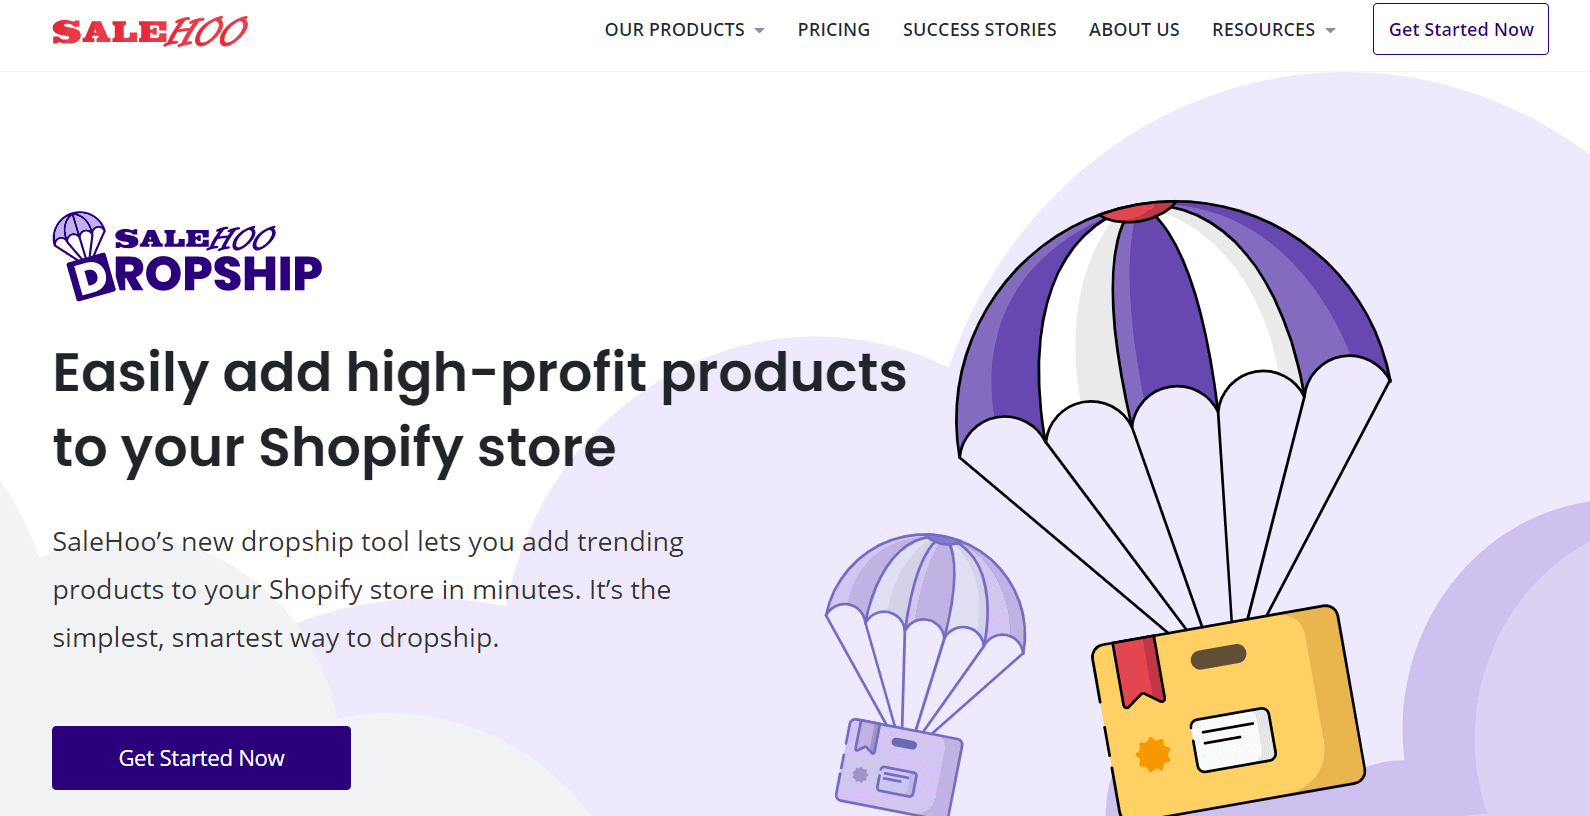 Salehoo dropshipping- add products to shopify store